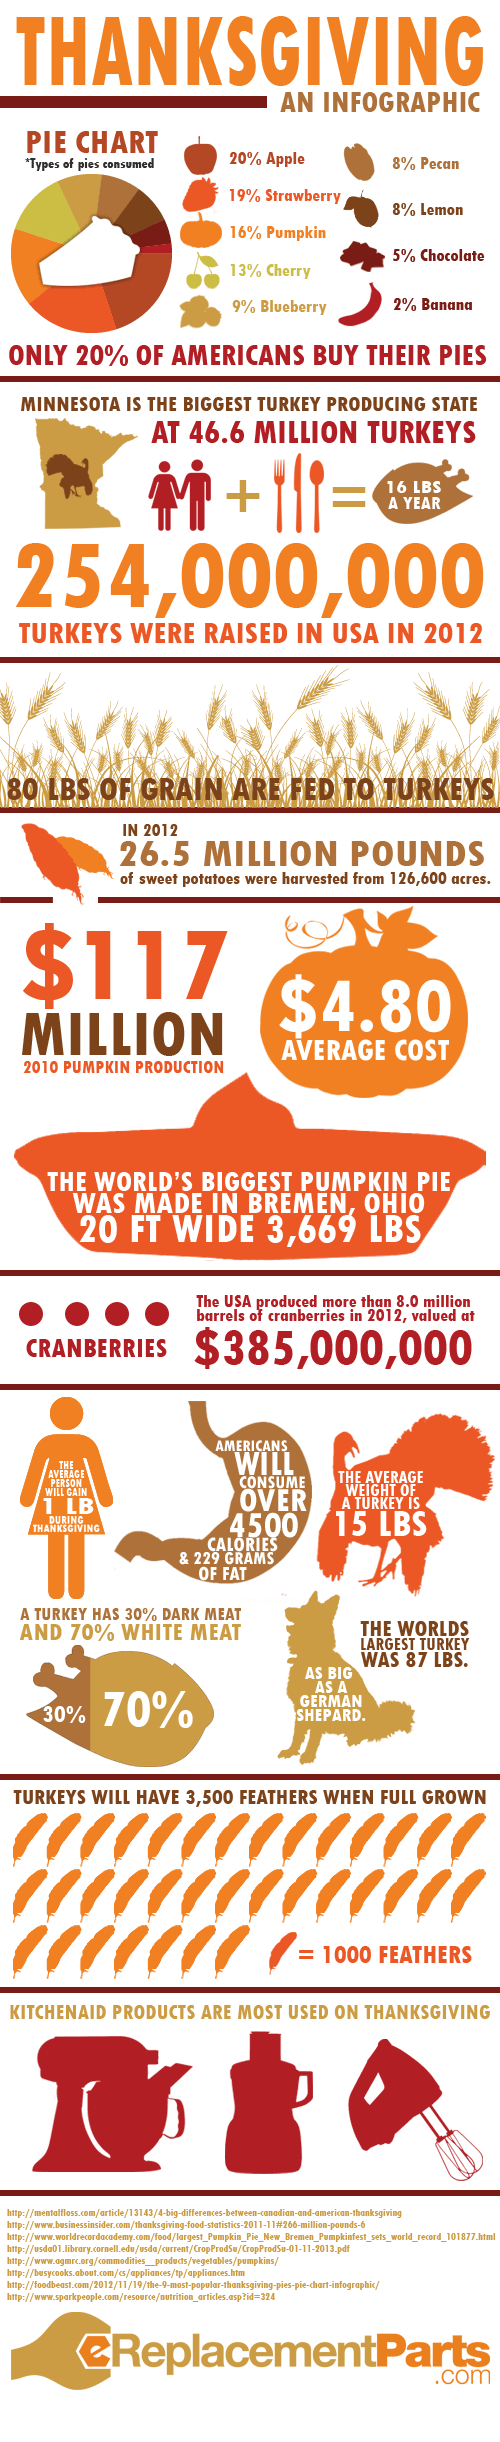 infographic thanksgiving - 7900877824